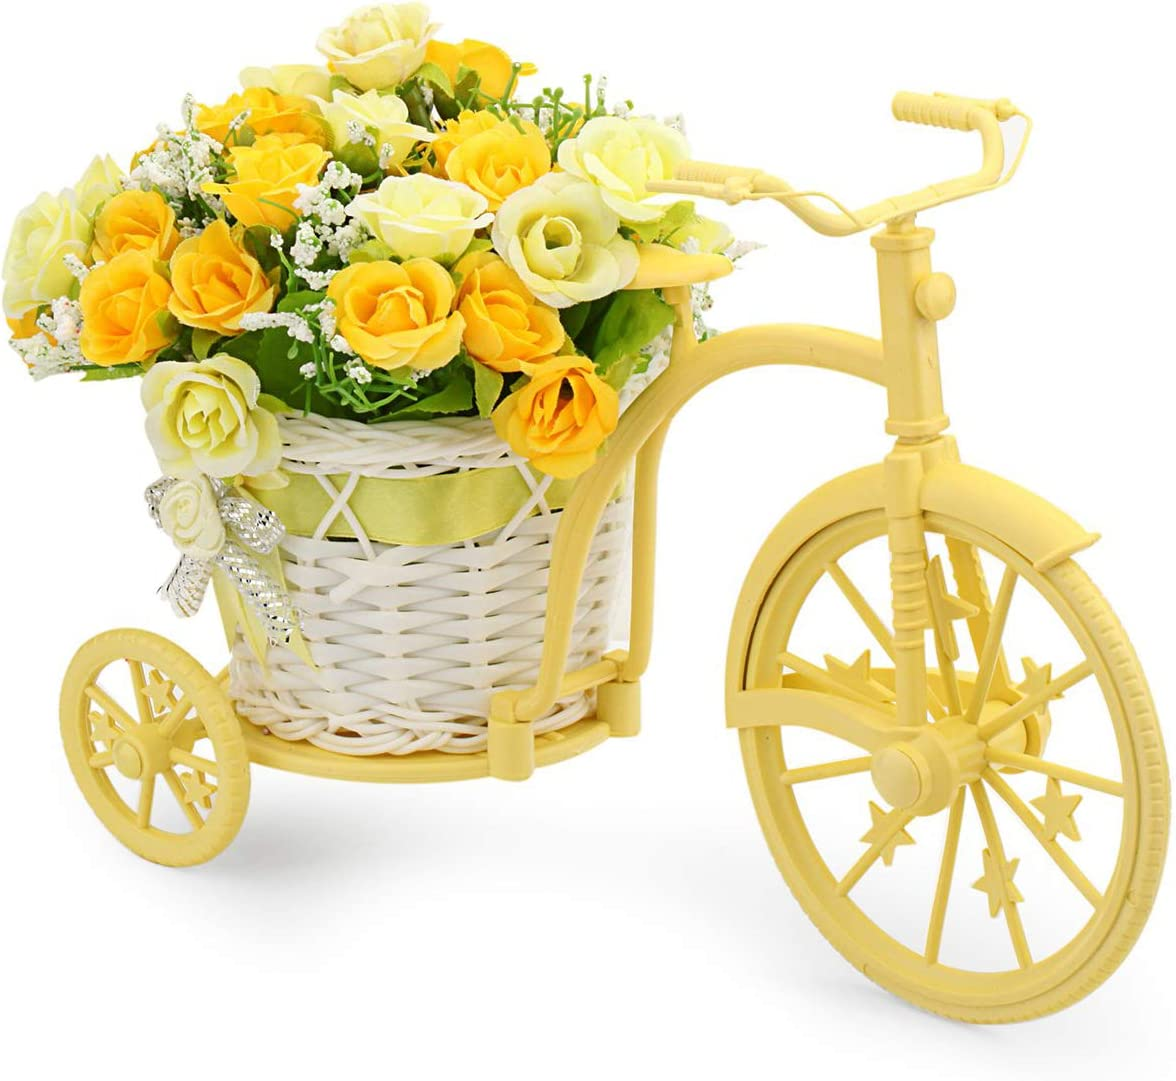 CN-Culture Nostalgic Bicycle Artificial Flower Decor Plant Stand (Yellow)